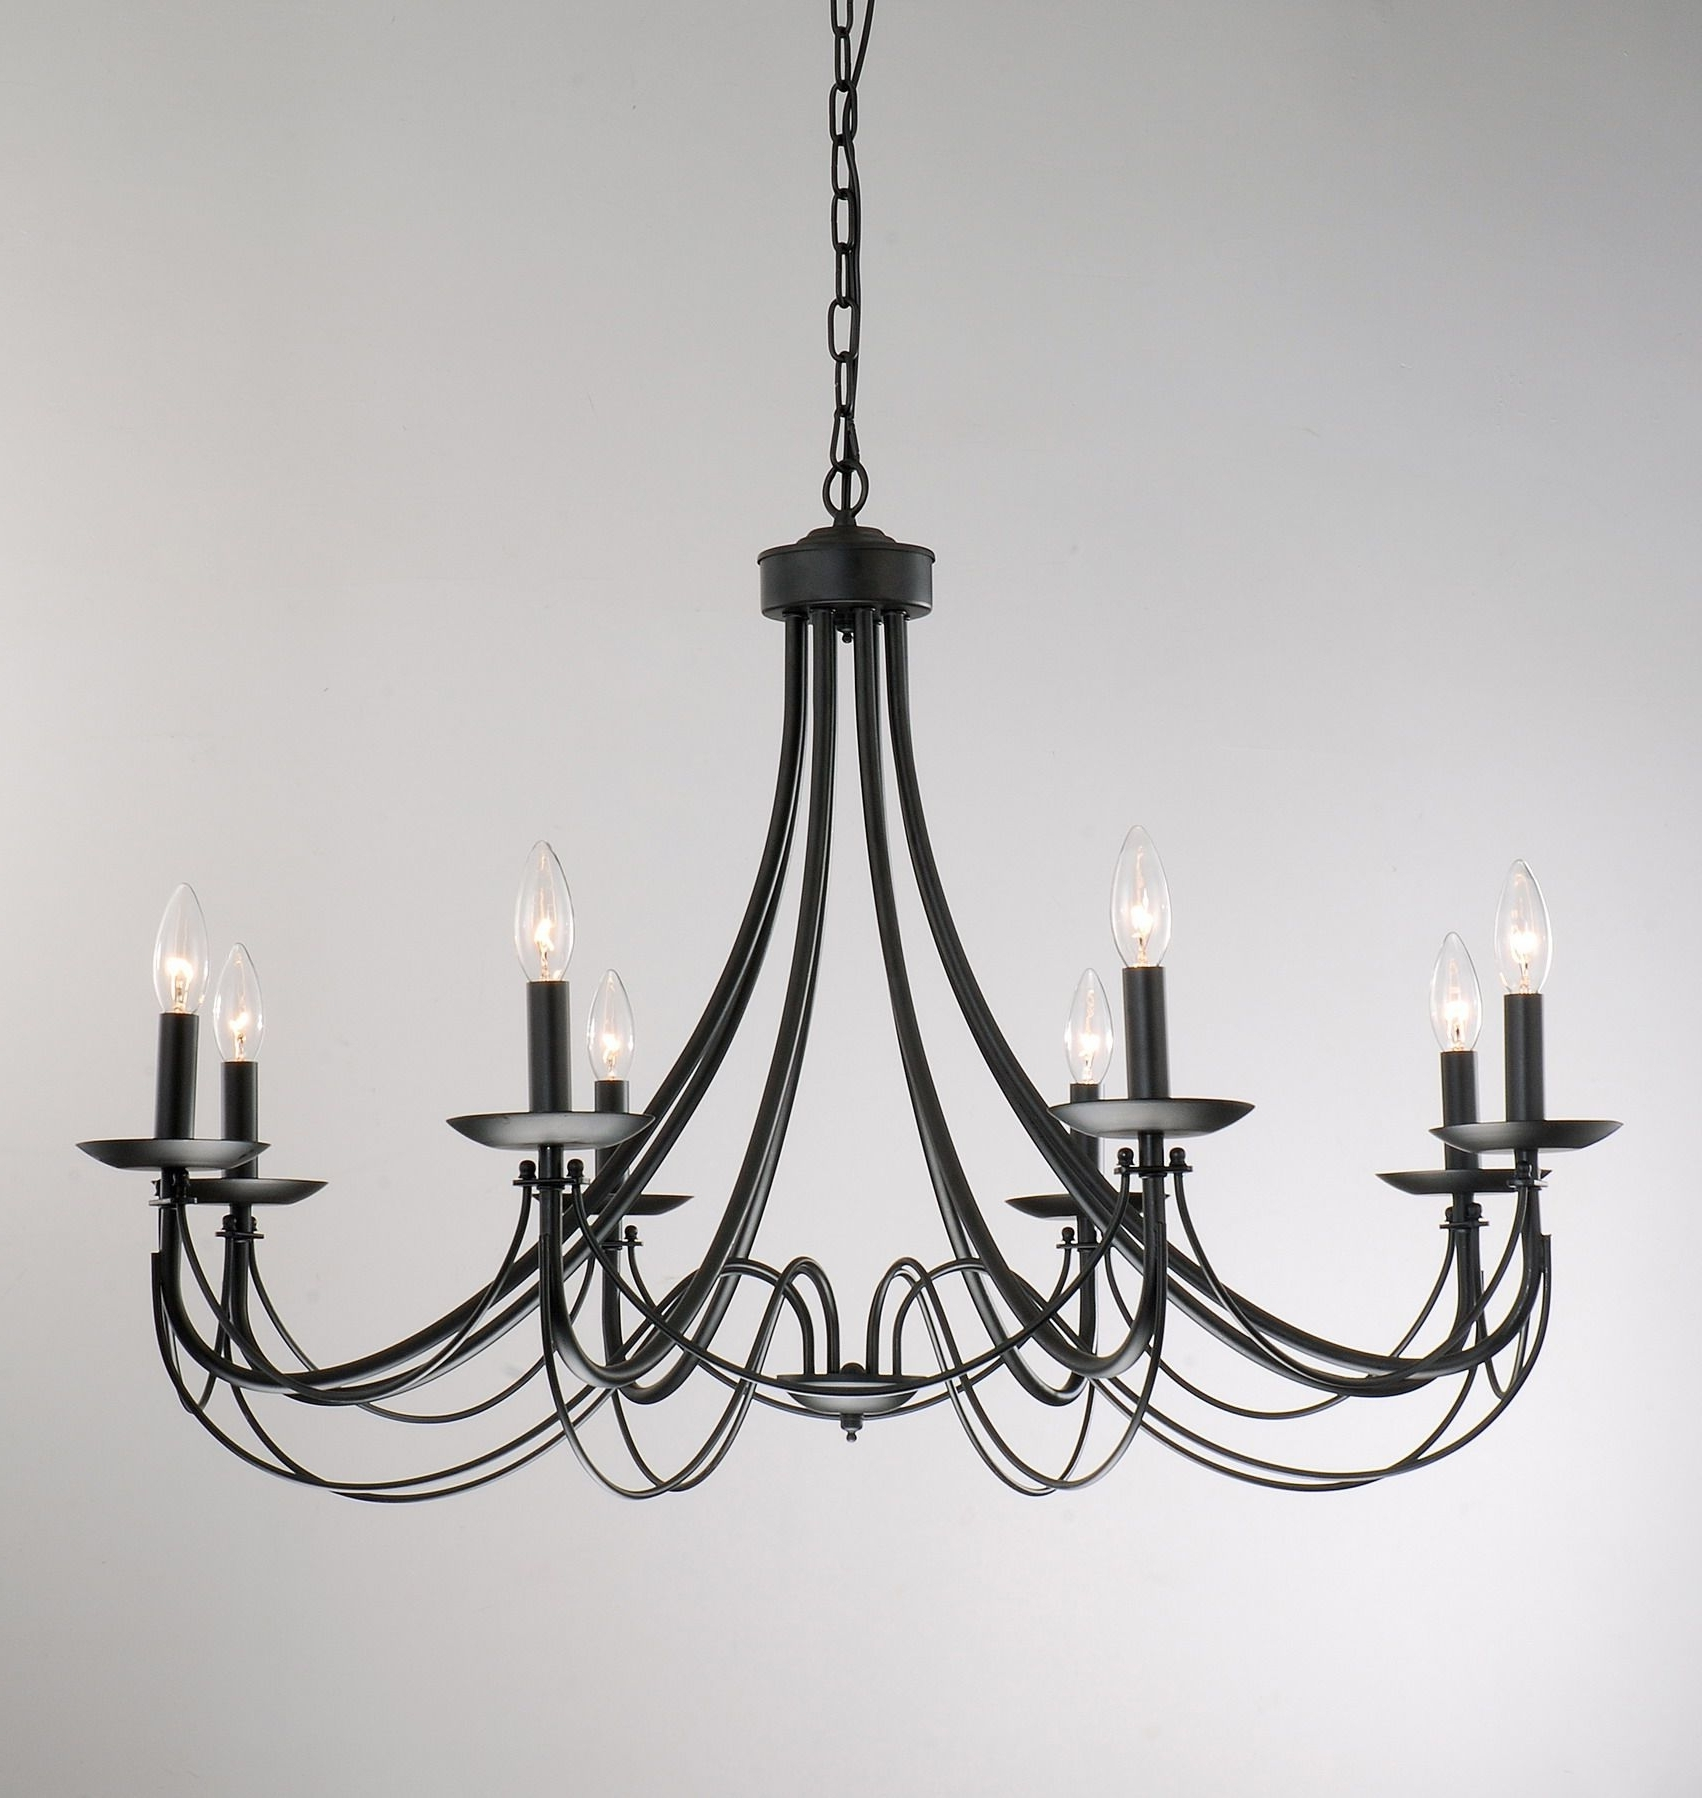 Black Chandelier, Chandeliers And Lights Regarding Black Chandeliers (View 19 of 20)